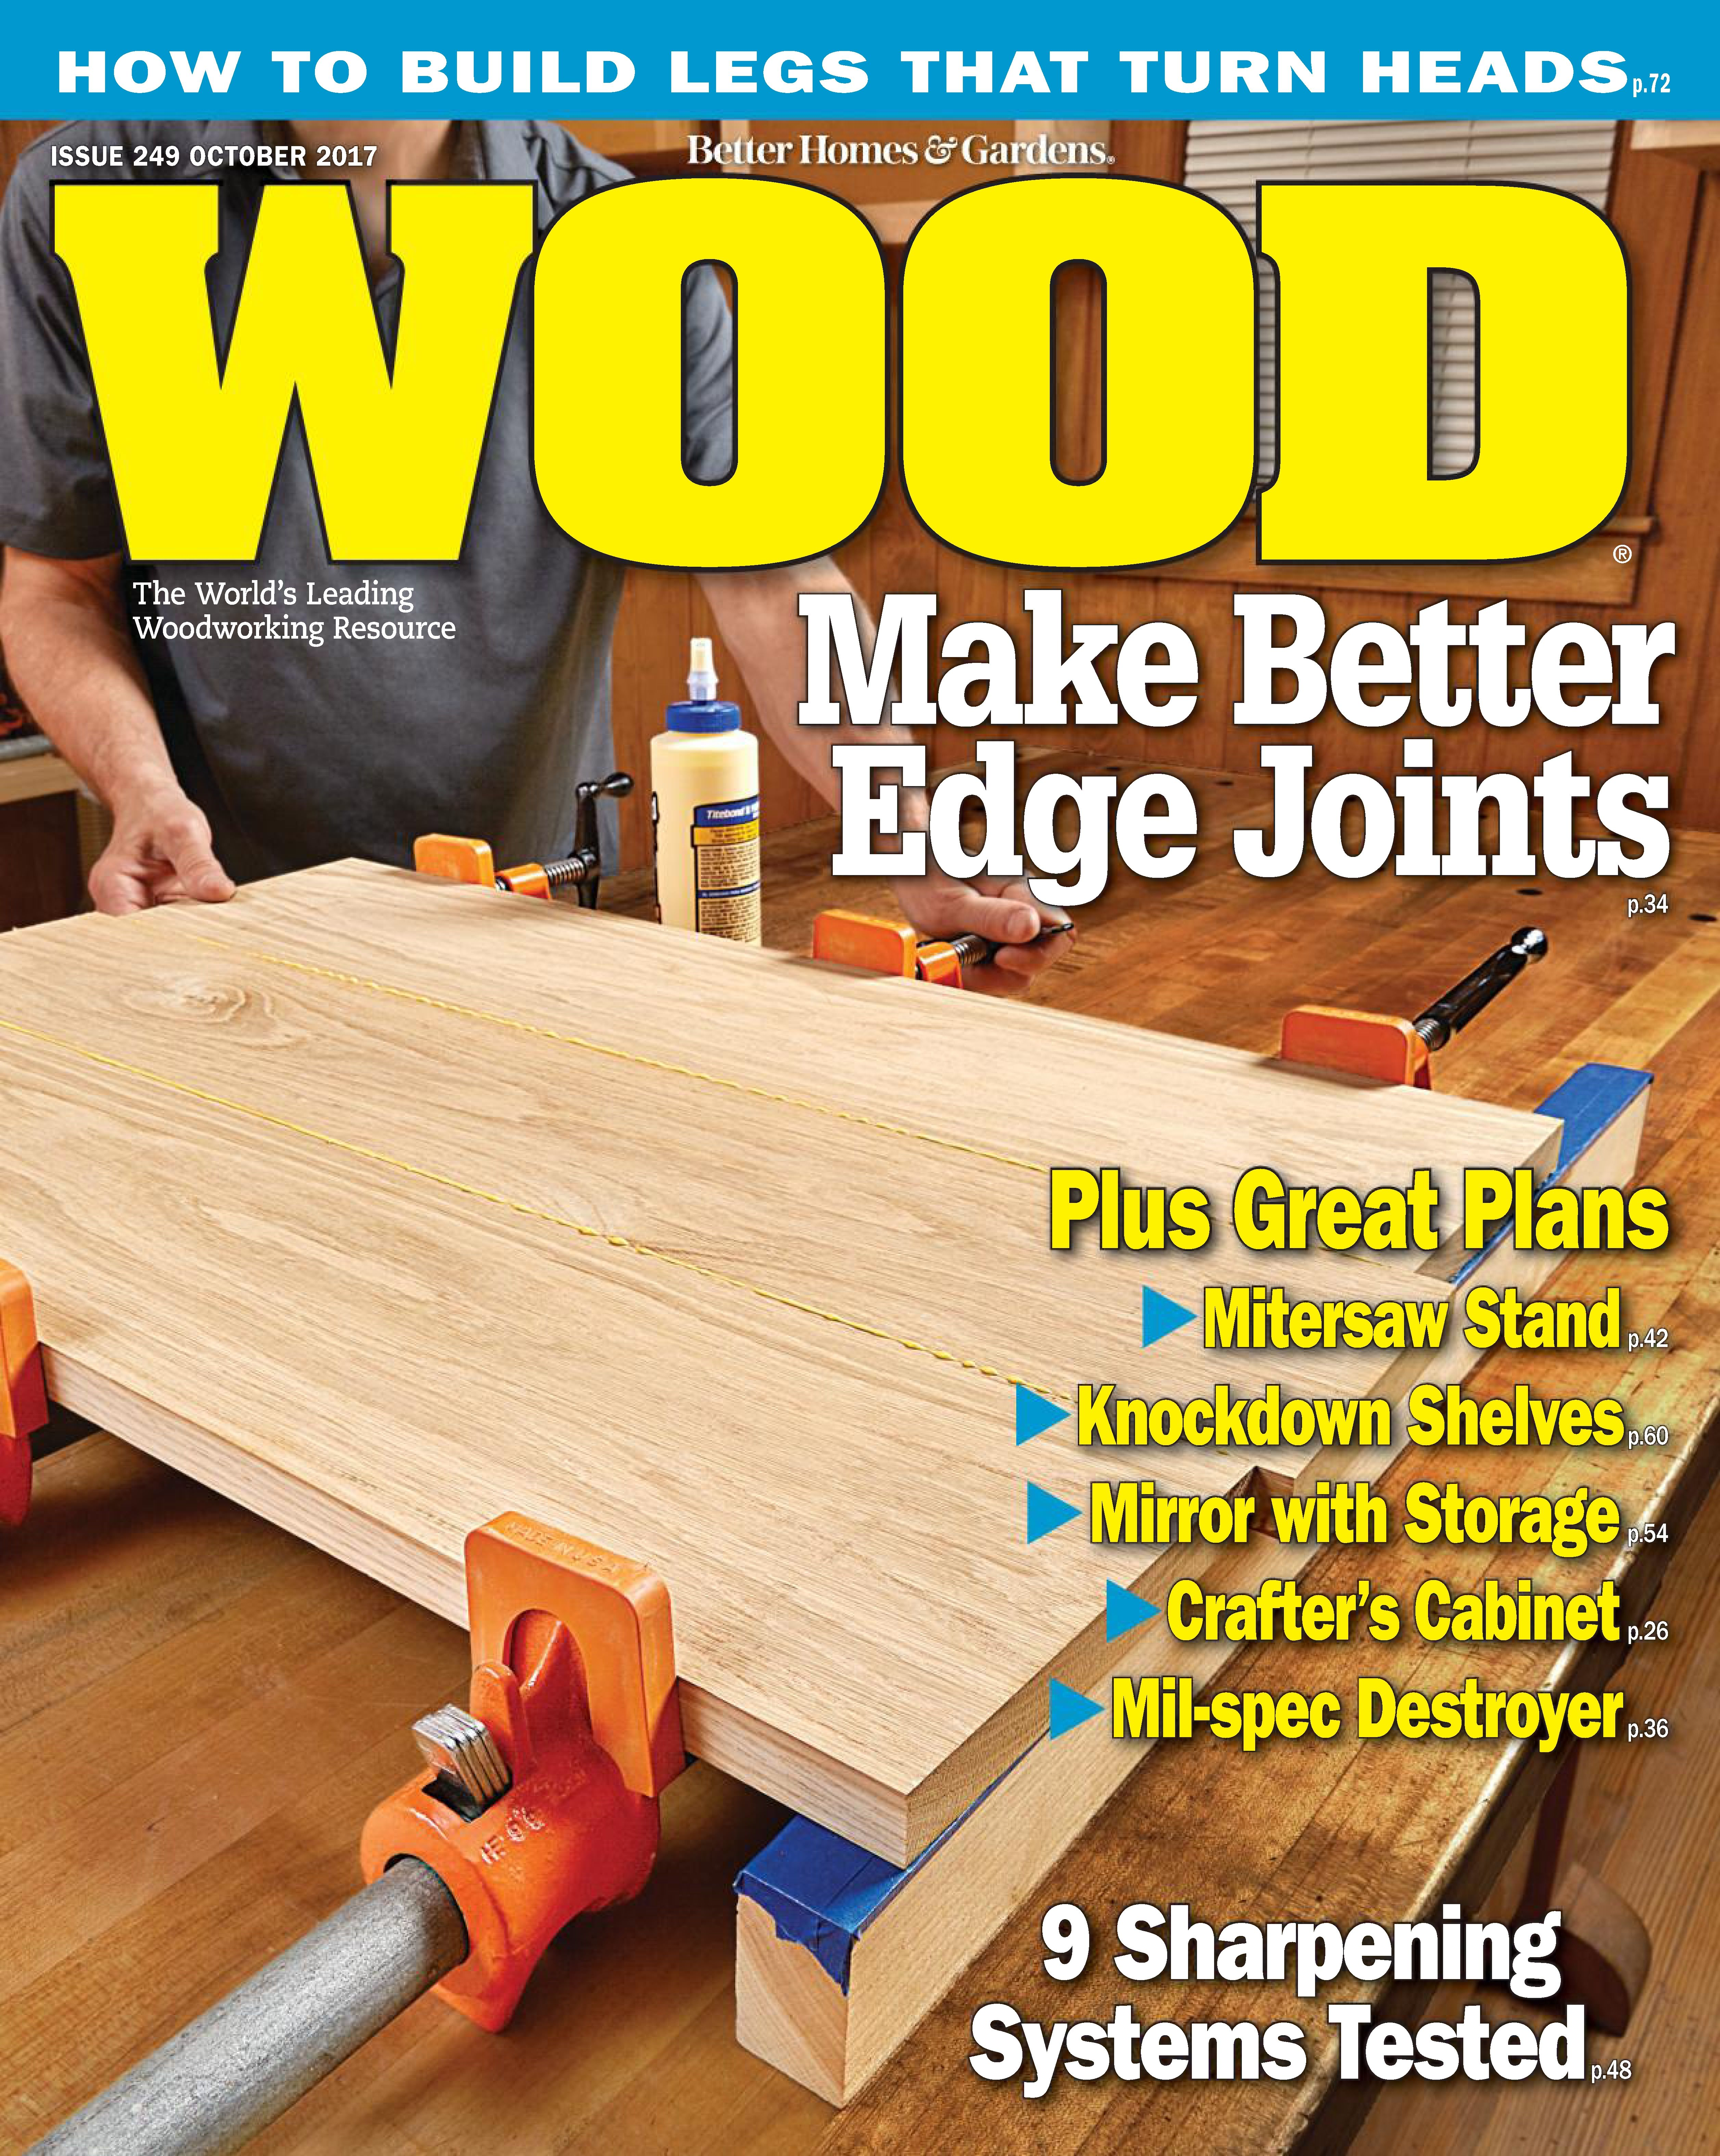 Back Issues Of WOOD Magazine